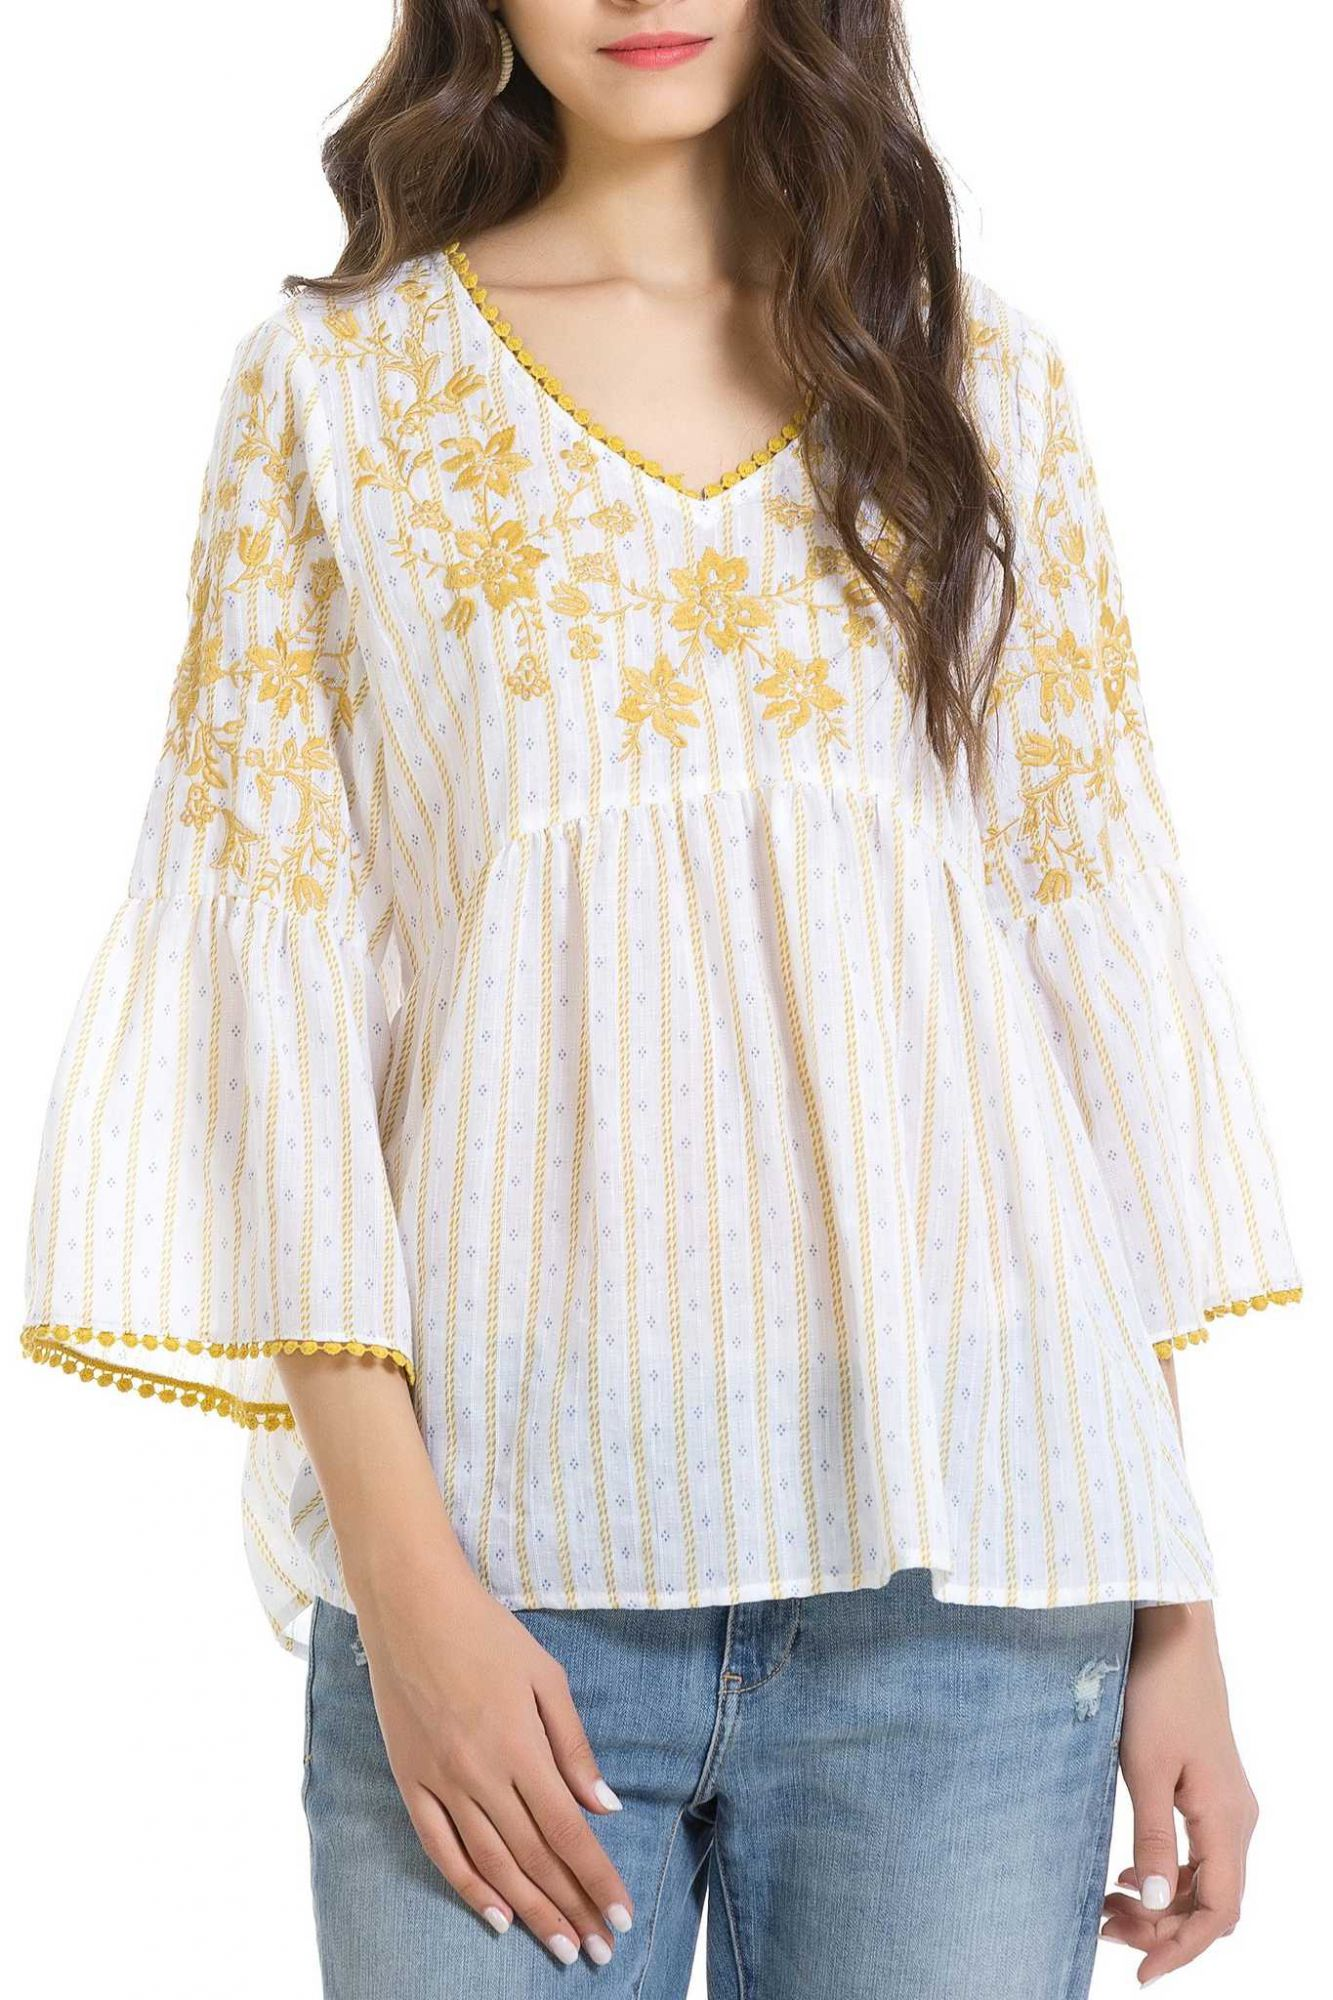 Anany white top Maturín with embroidery